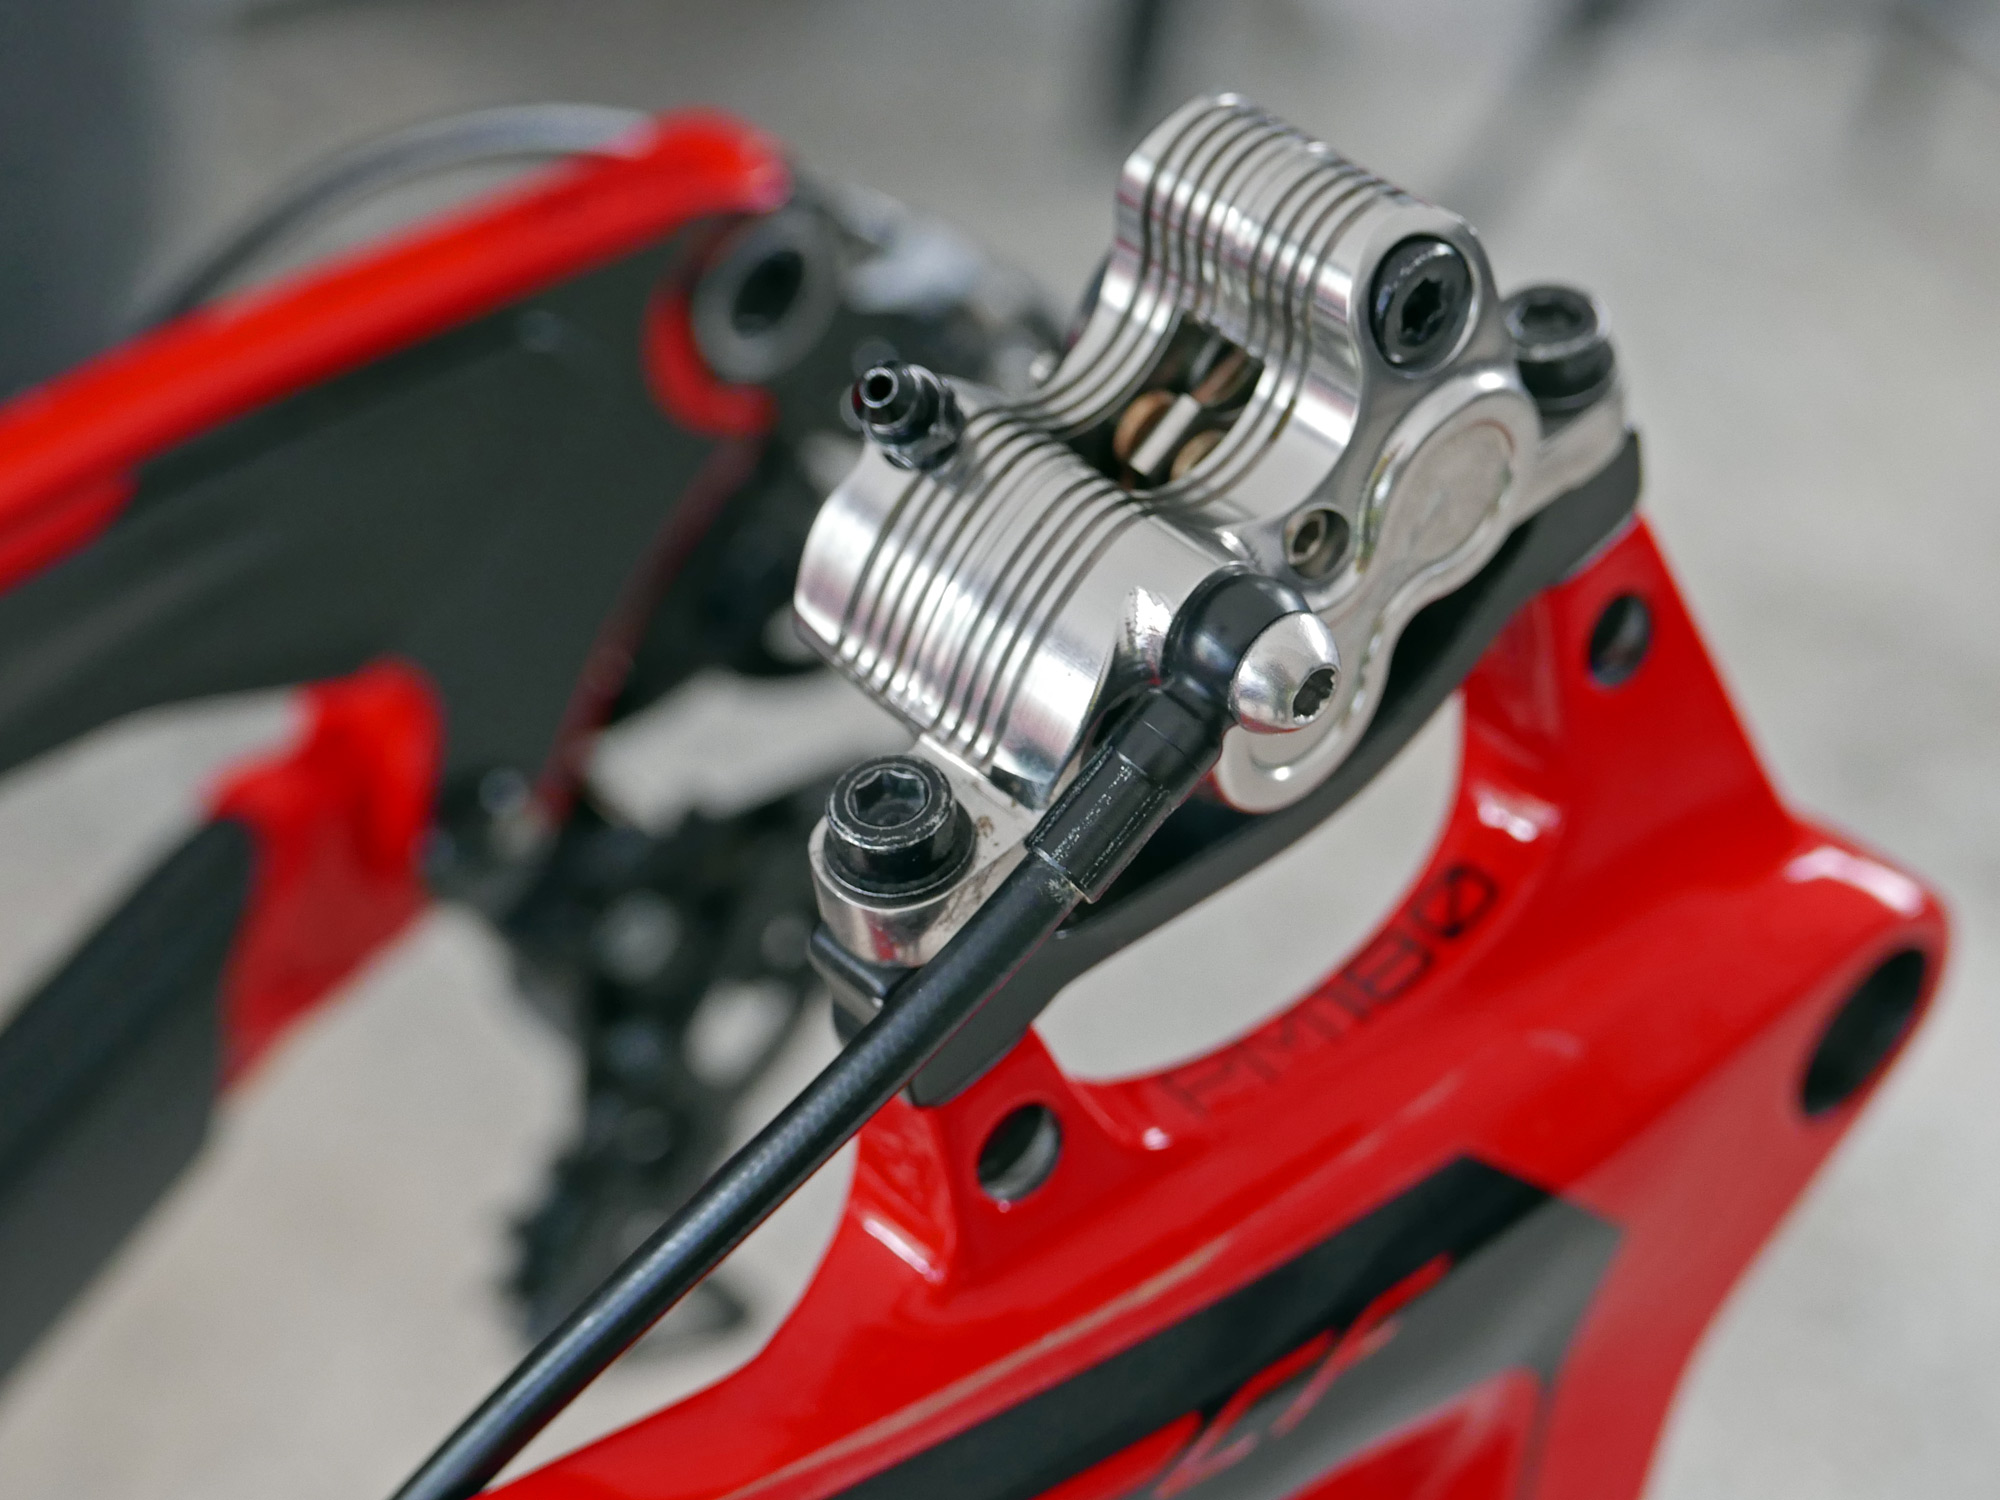 Dh Sneak Peek Next Gen Quadiem Prototype 4 Piston Downhill Brakes